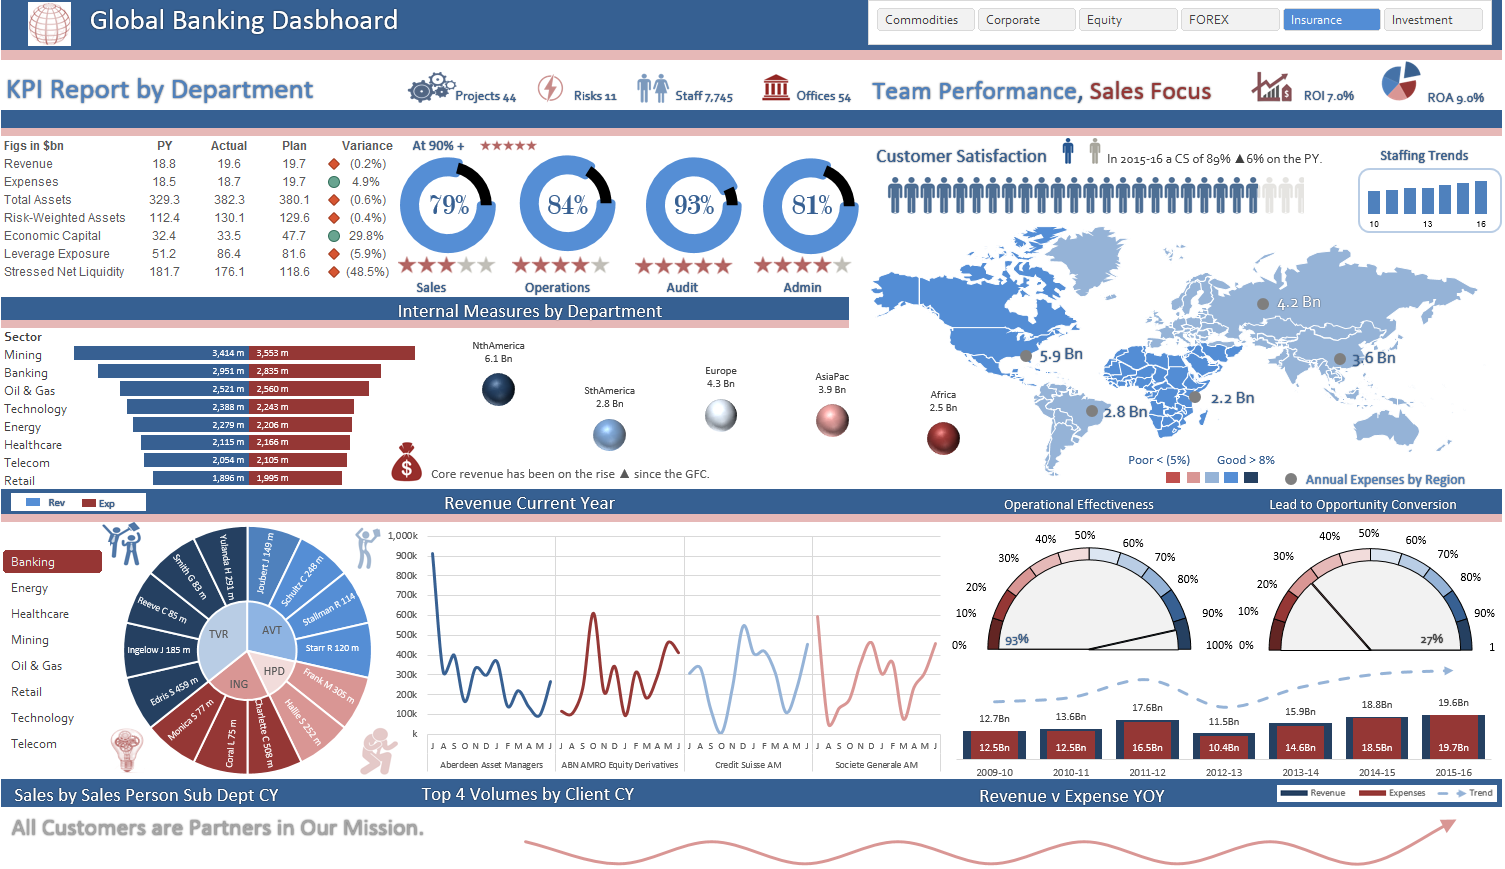 A Dashboard I Completed For Cpa Australia For A Series On